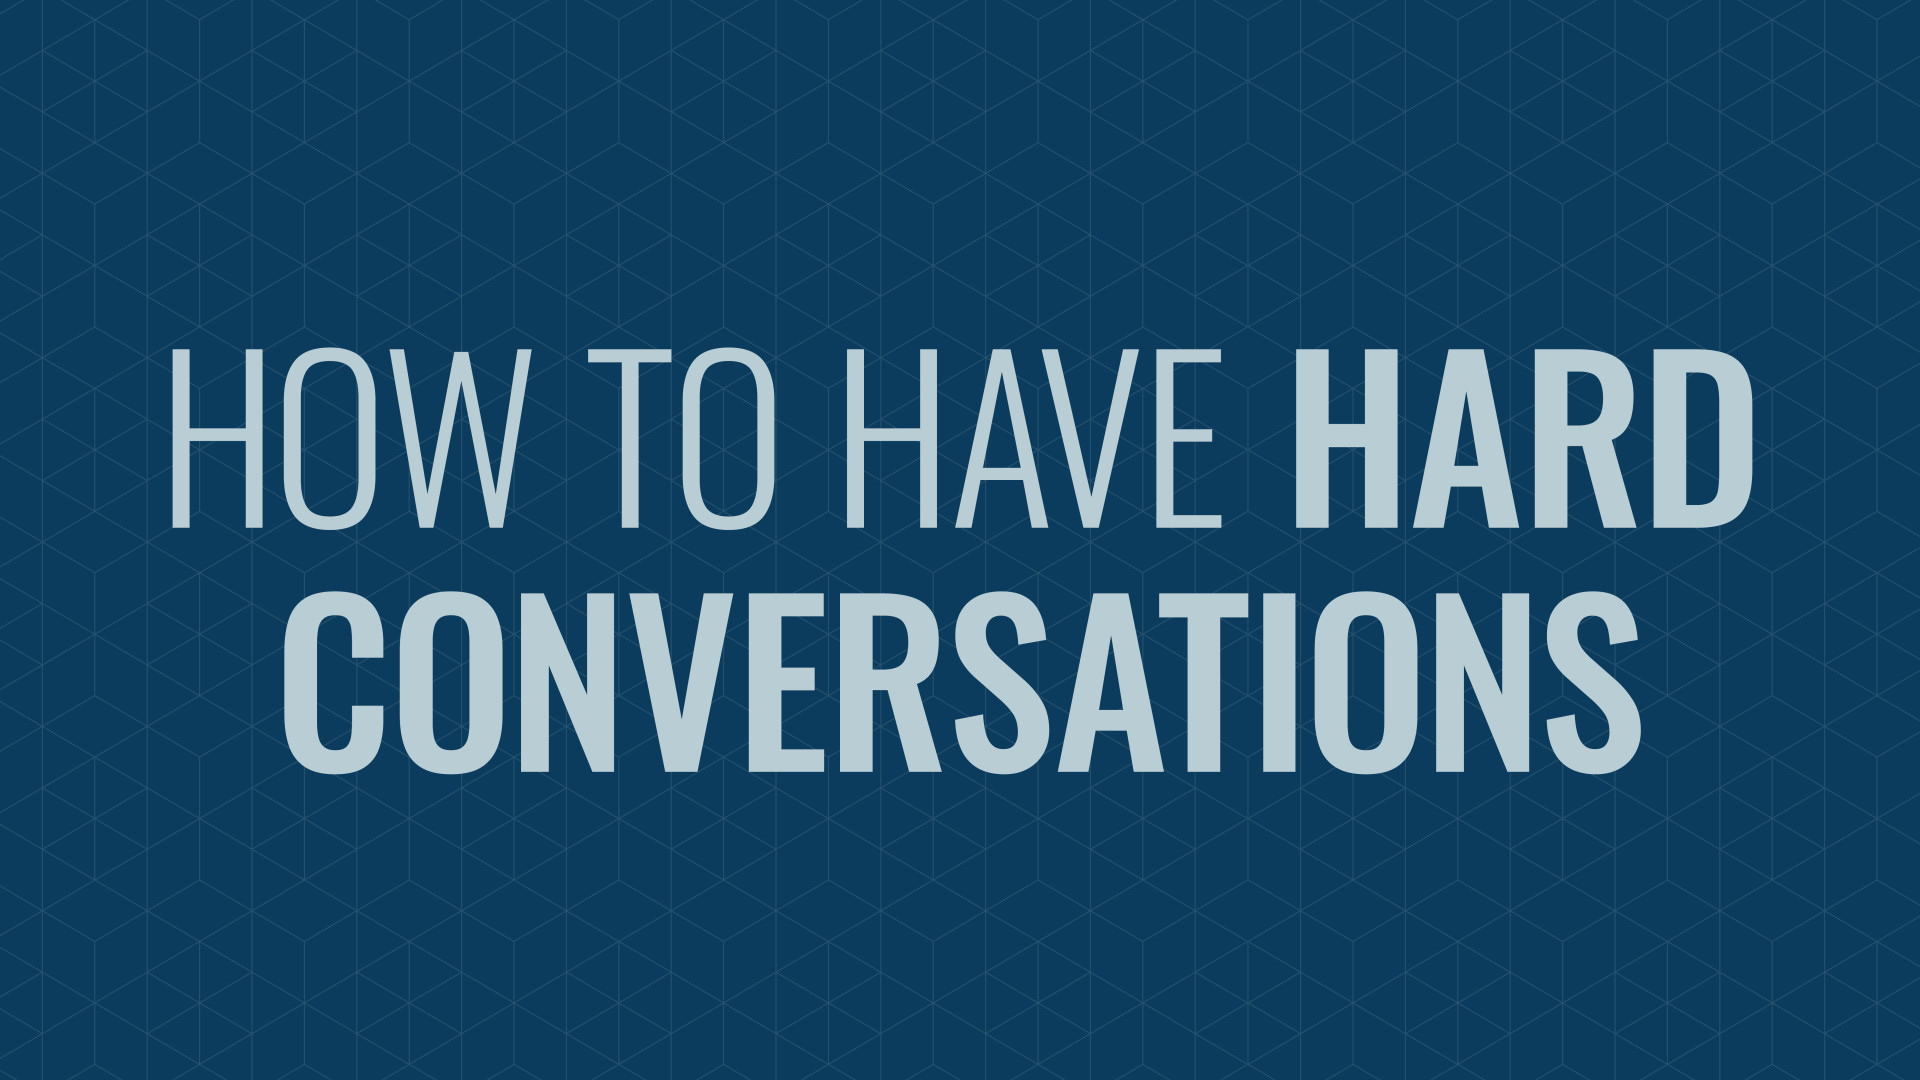 How to Have Hard Conversations Hero Image